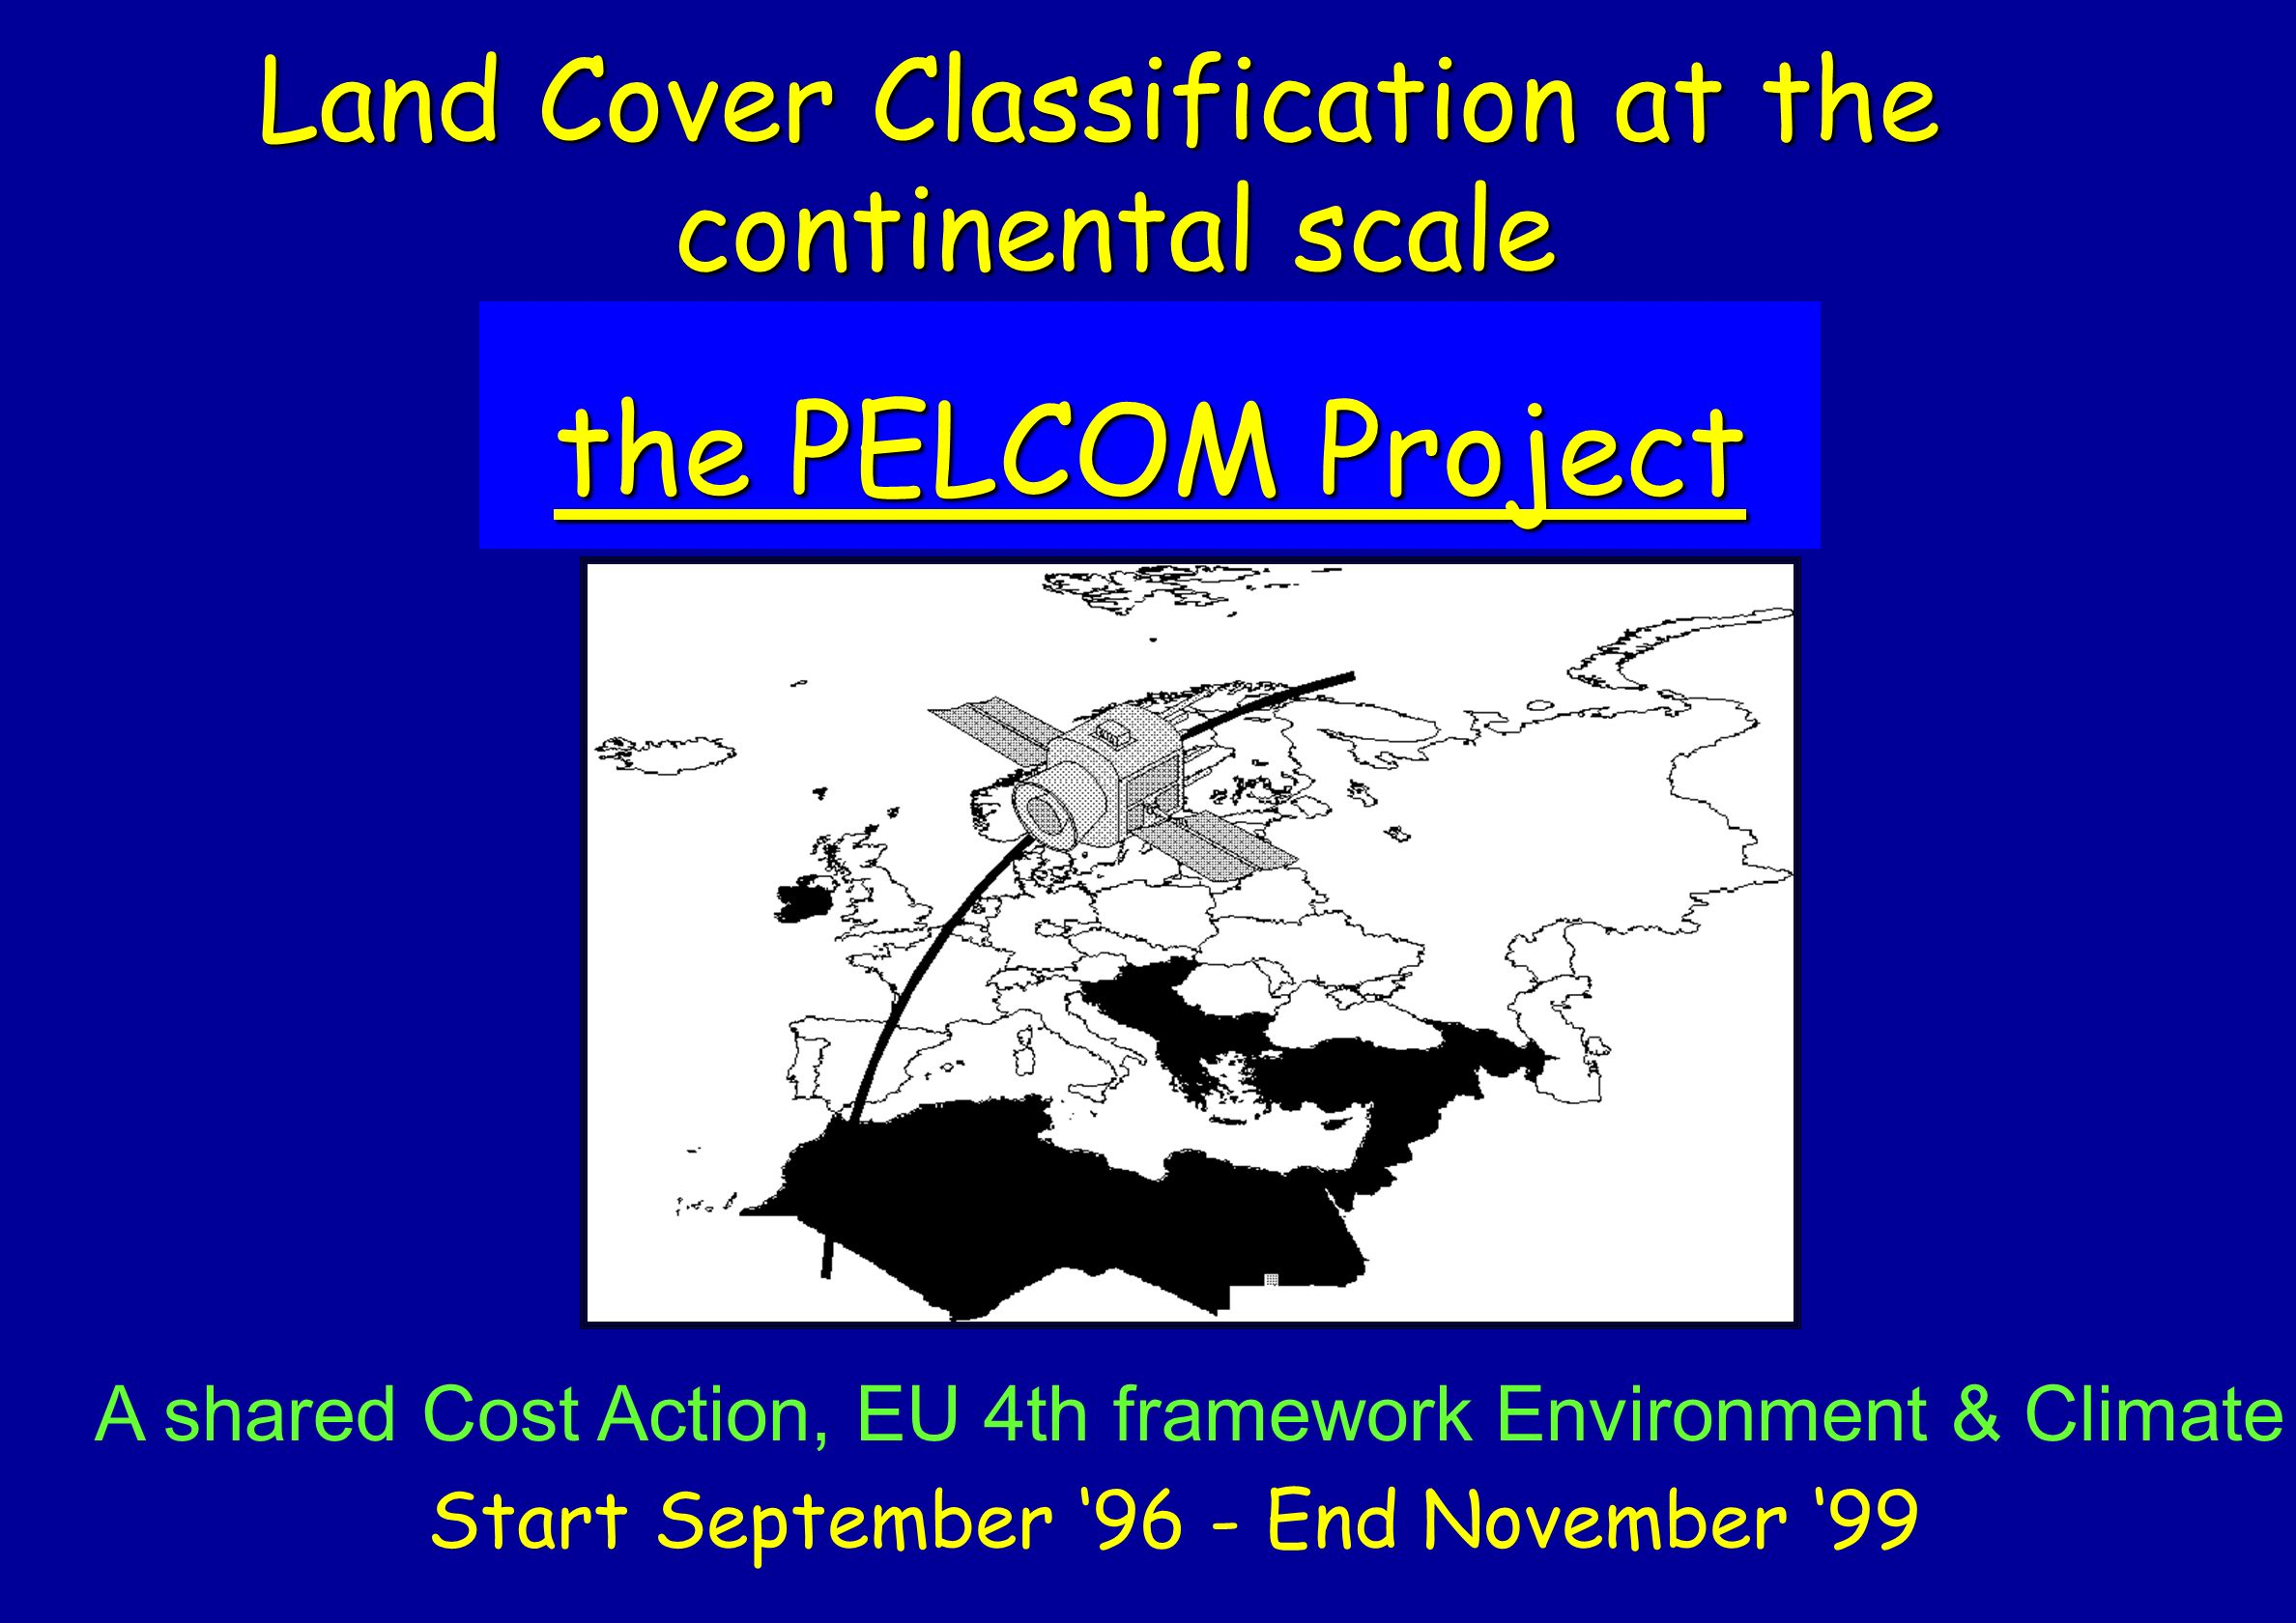 the PELCOM Project Land Cover Classification at the continental scale